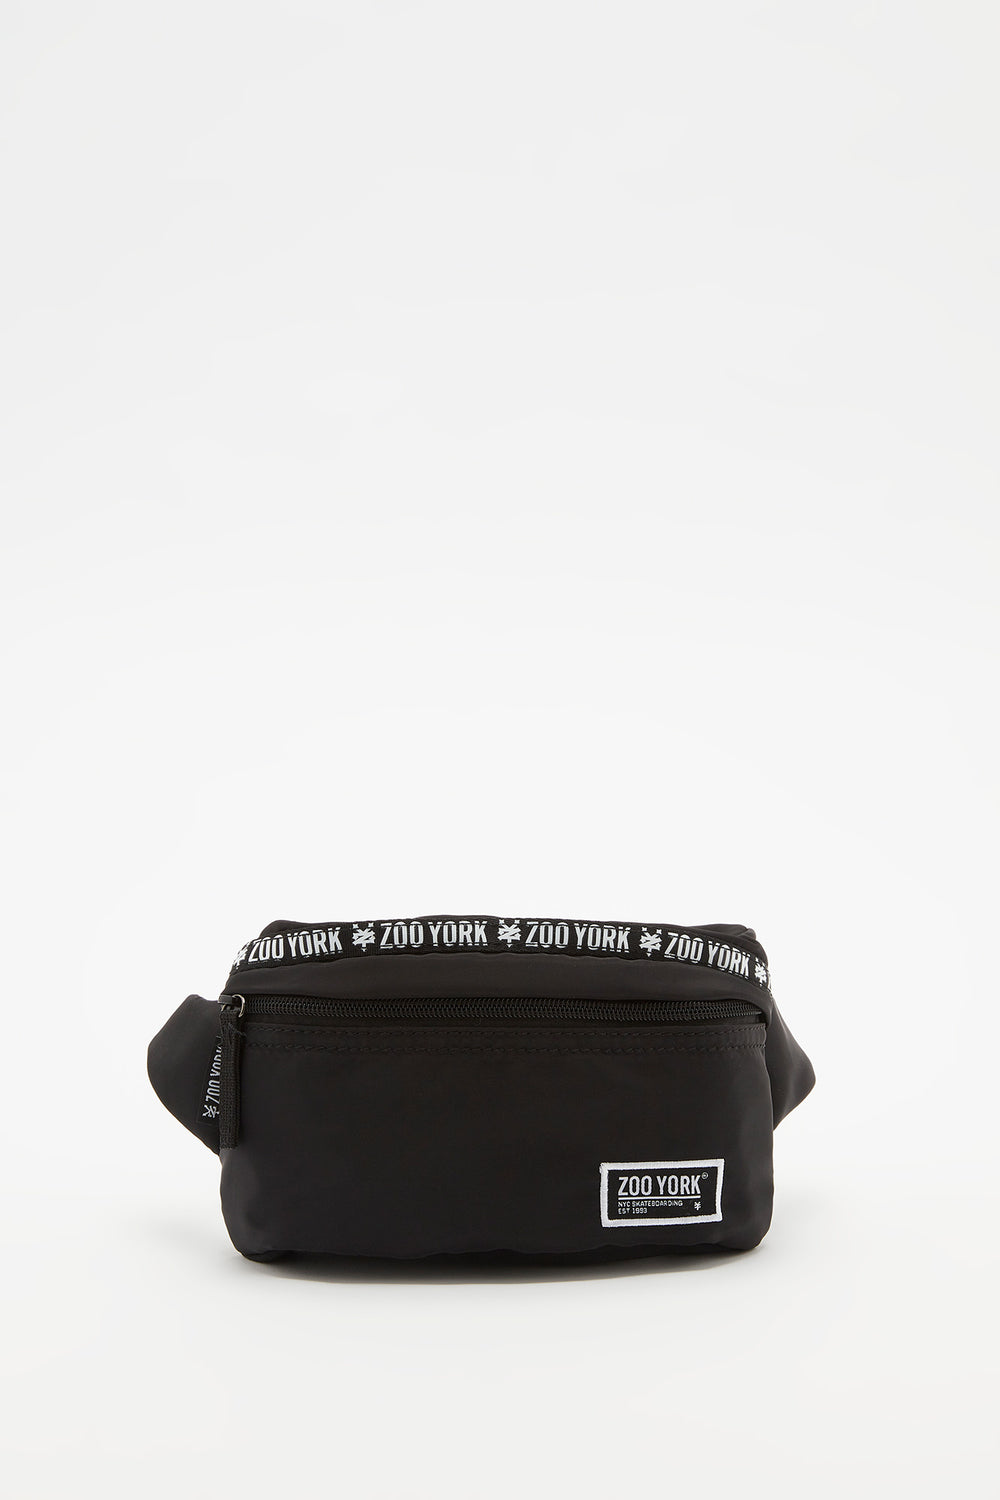 Zoo York Fanny Pack Black